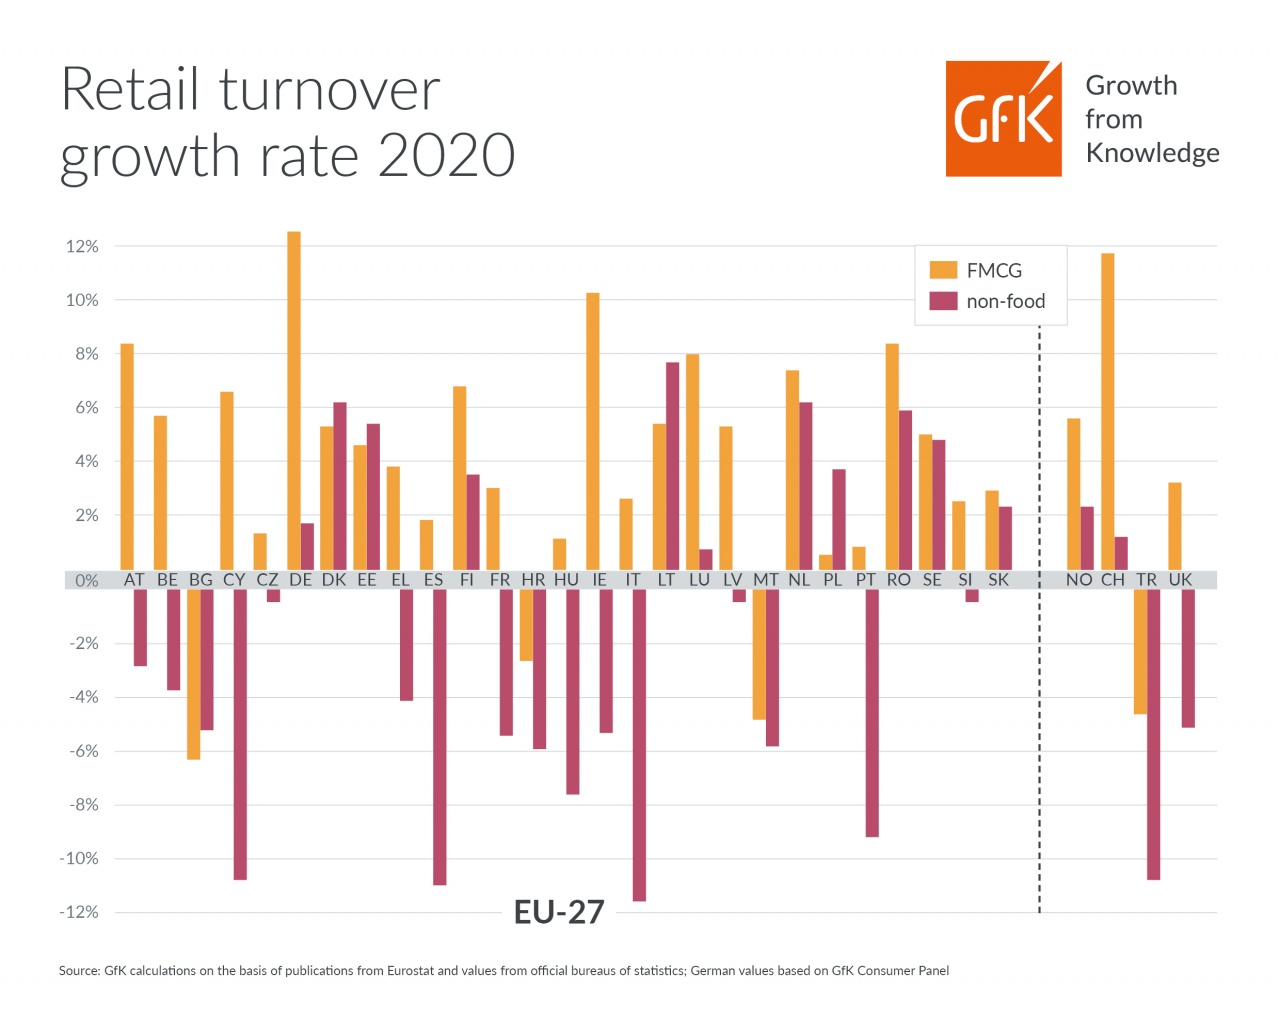 retail turnover growth rate 2020